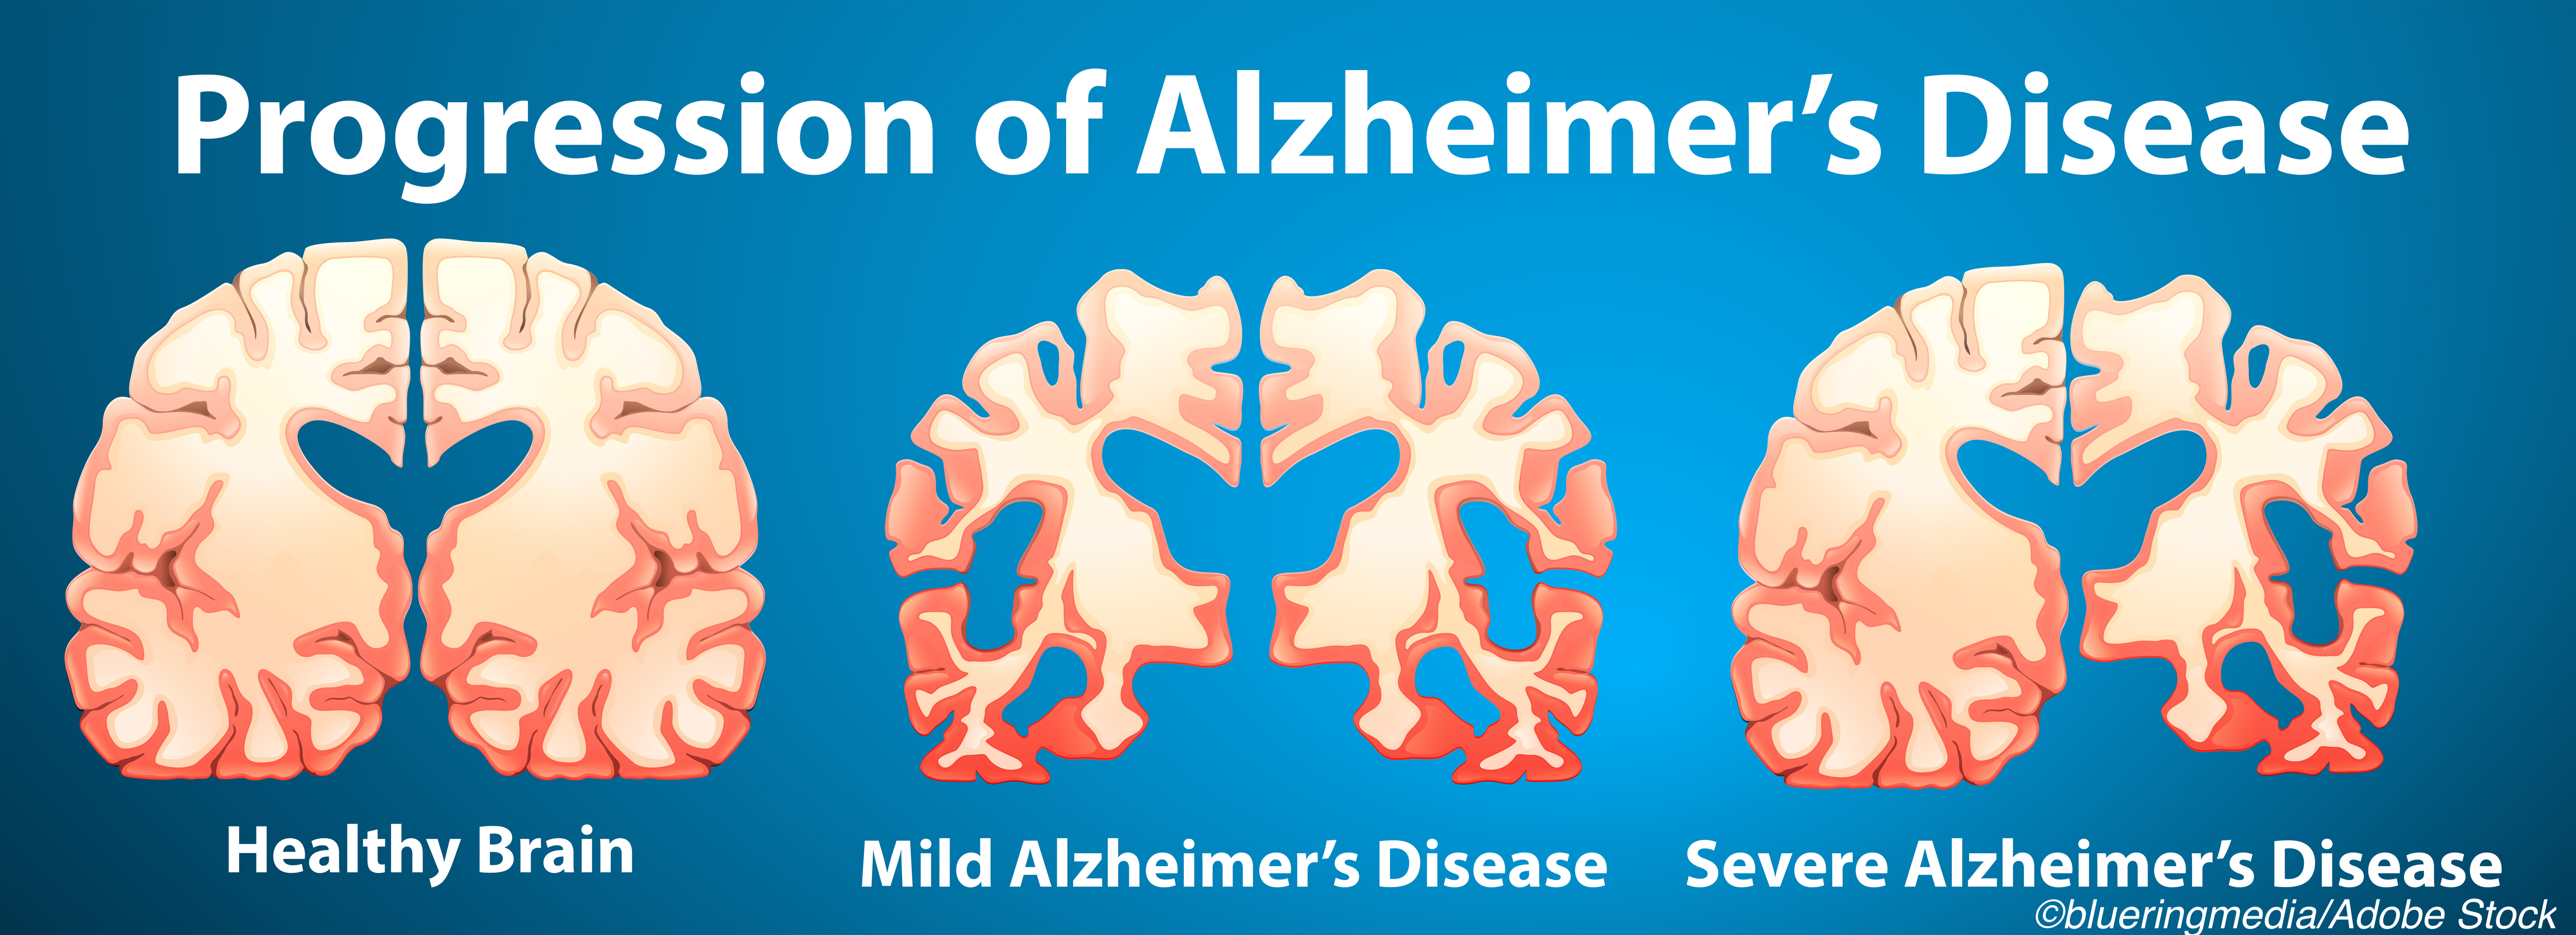 Alzheimer's Disease: From Diagnosis to Treatment, Change Is Coming